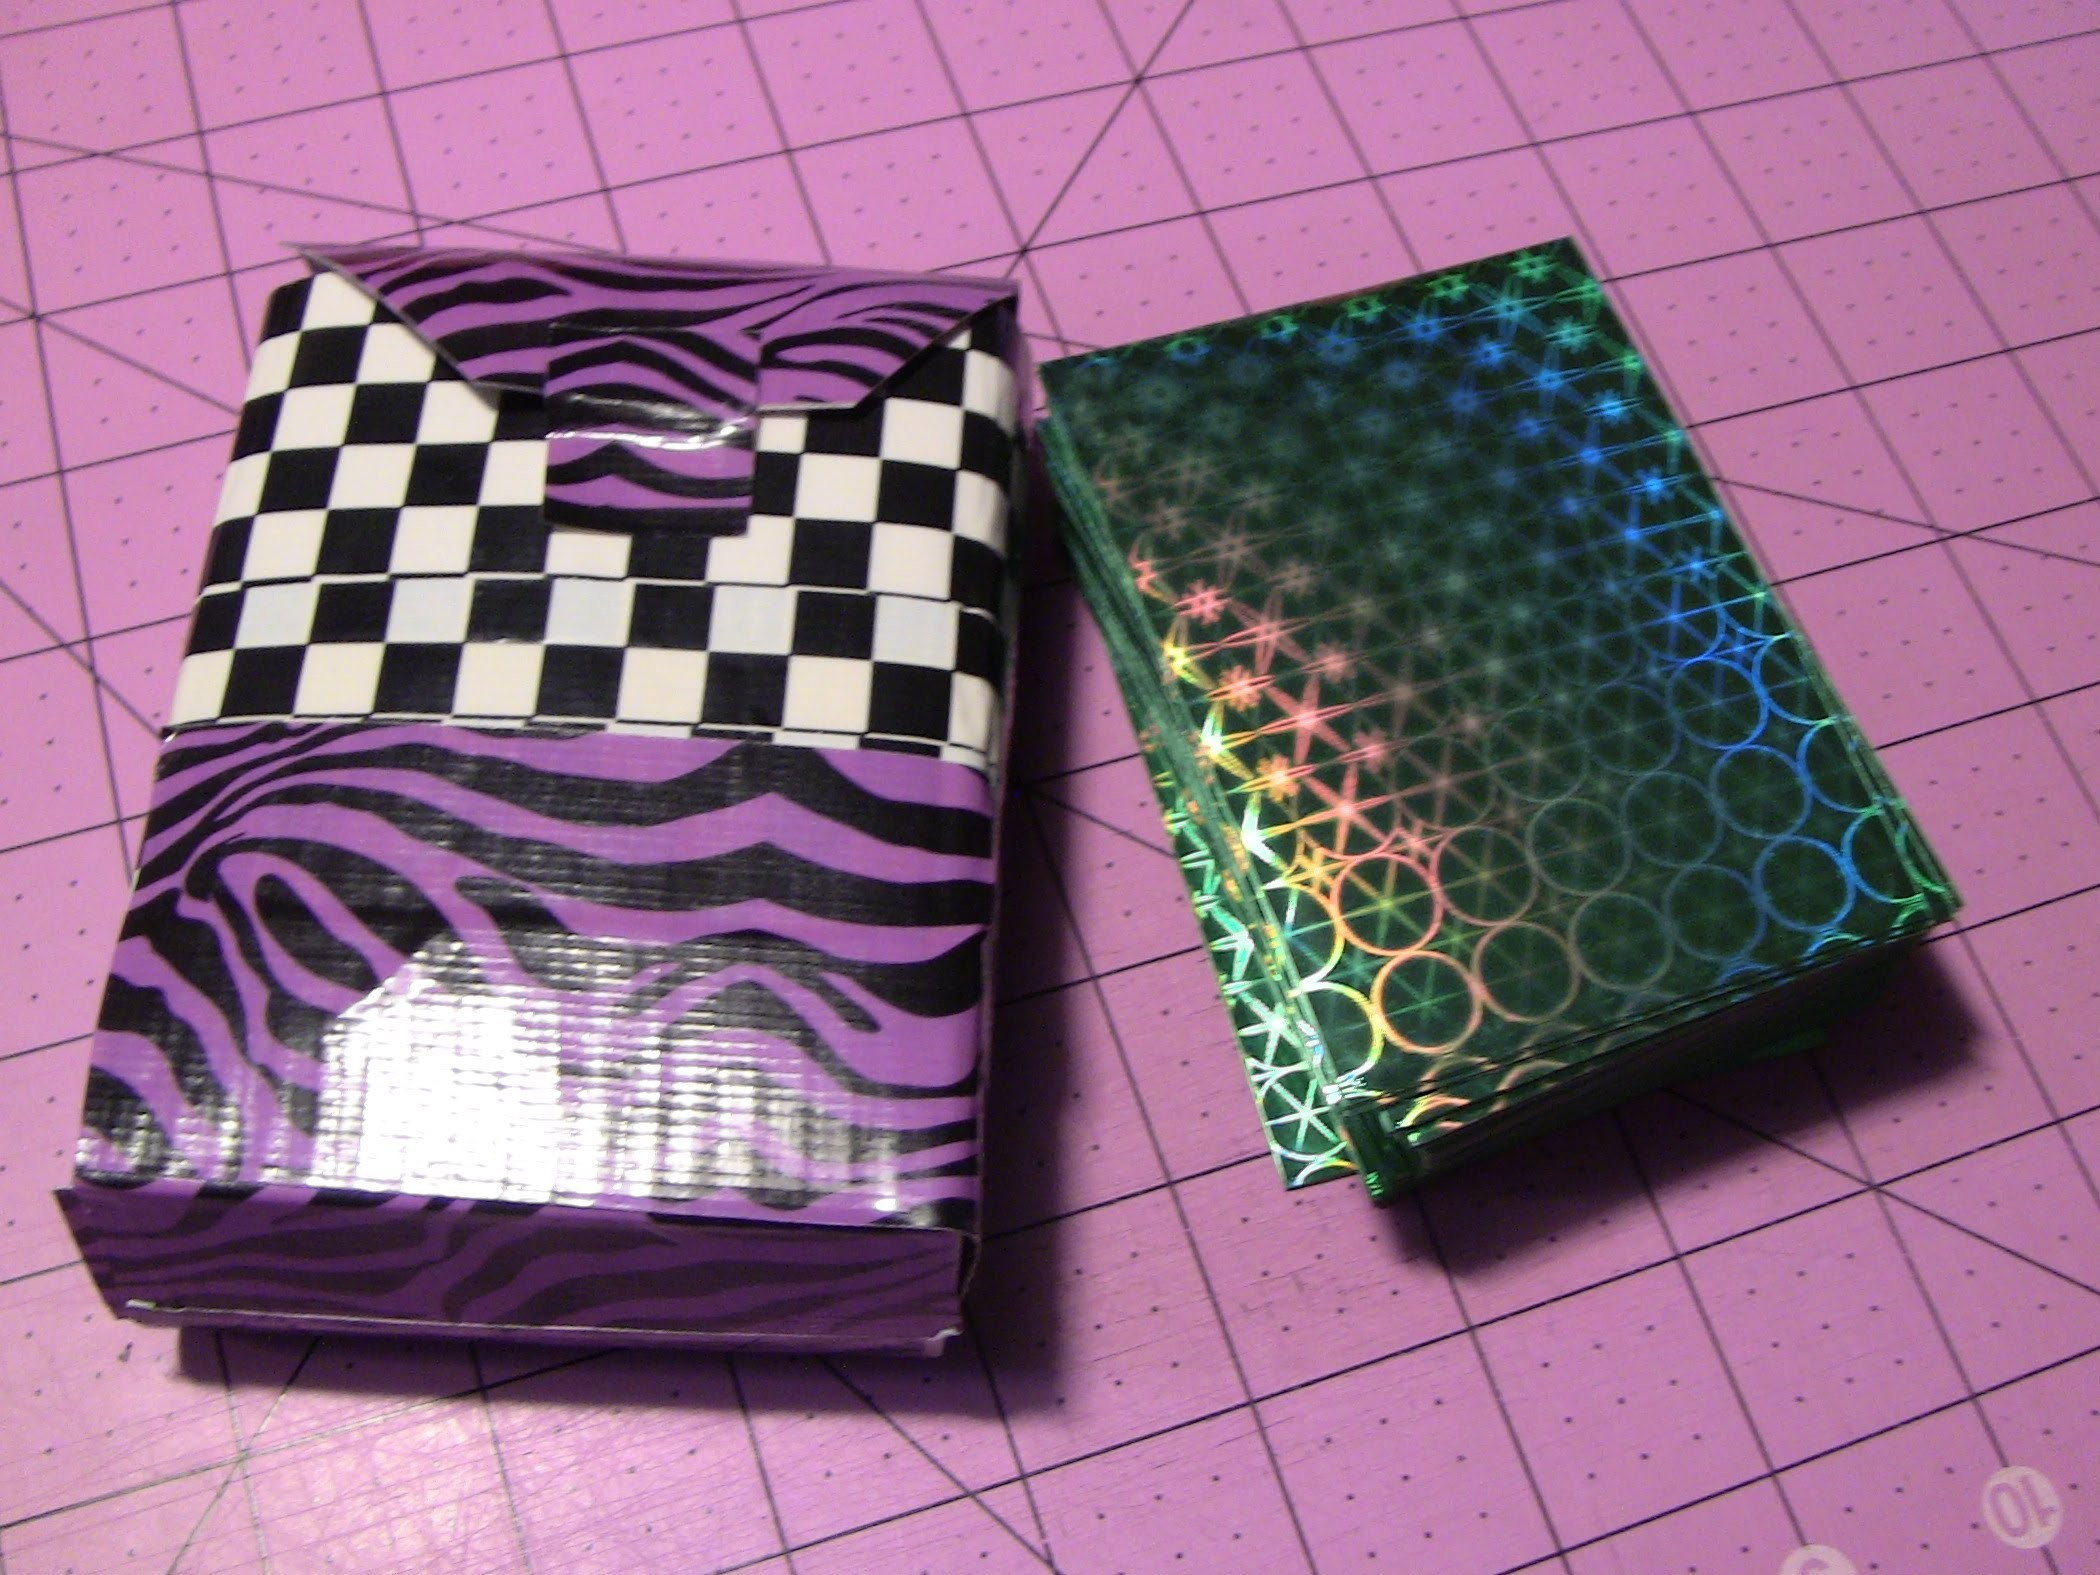 How to make a Duct tape Deck box!